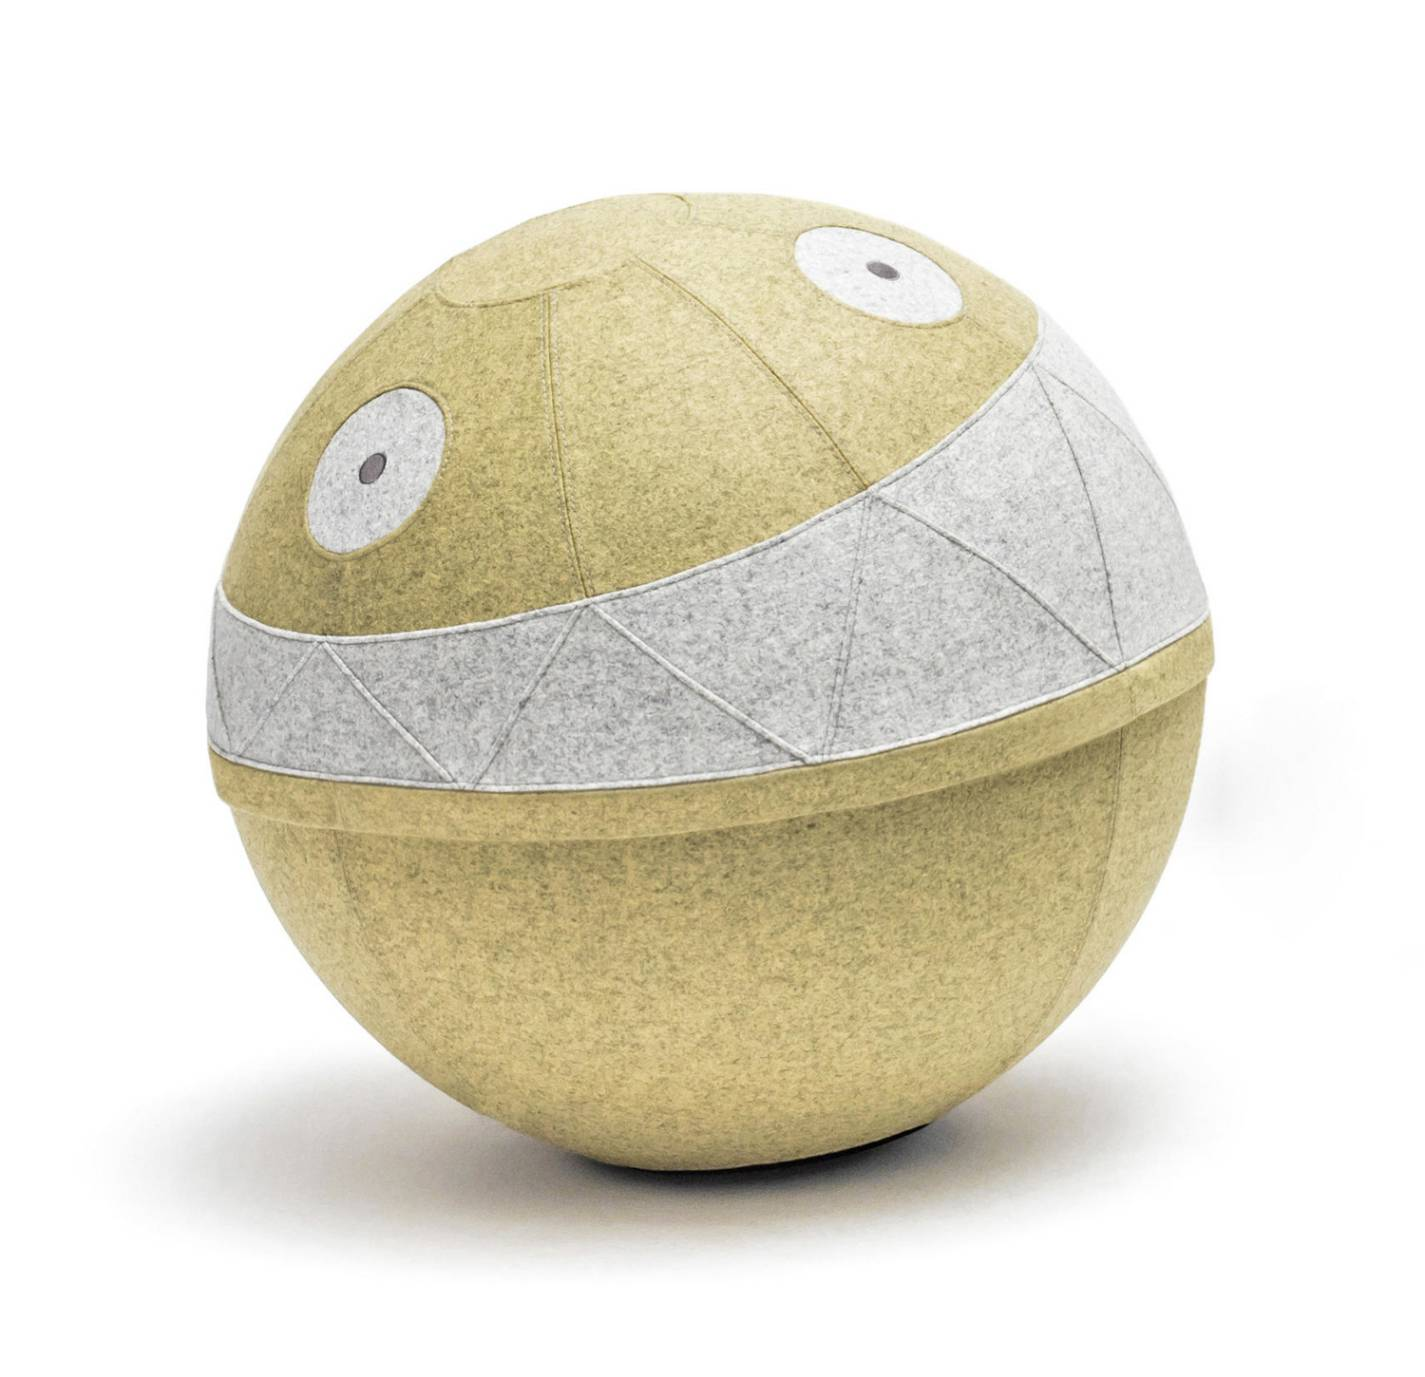 Noti Rollo Rebel Sitzball Design Möbel